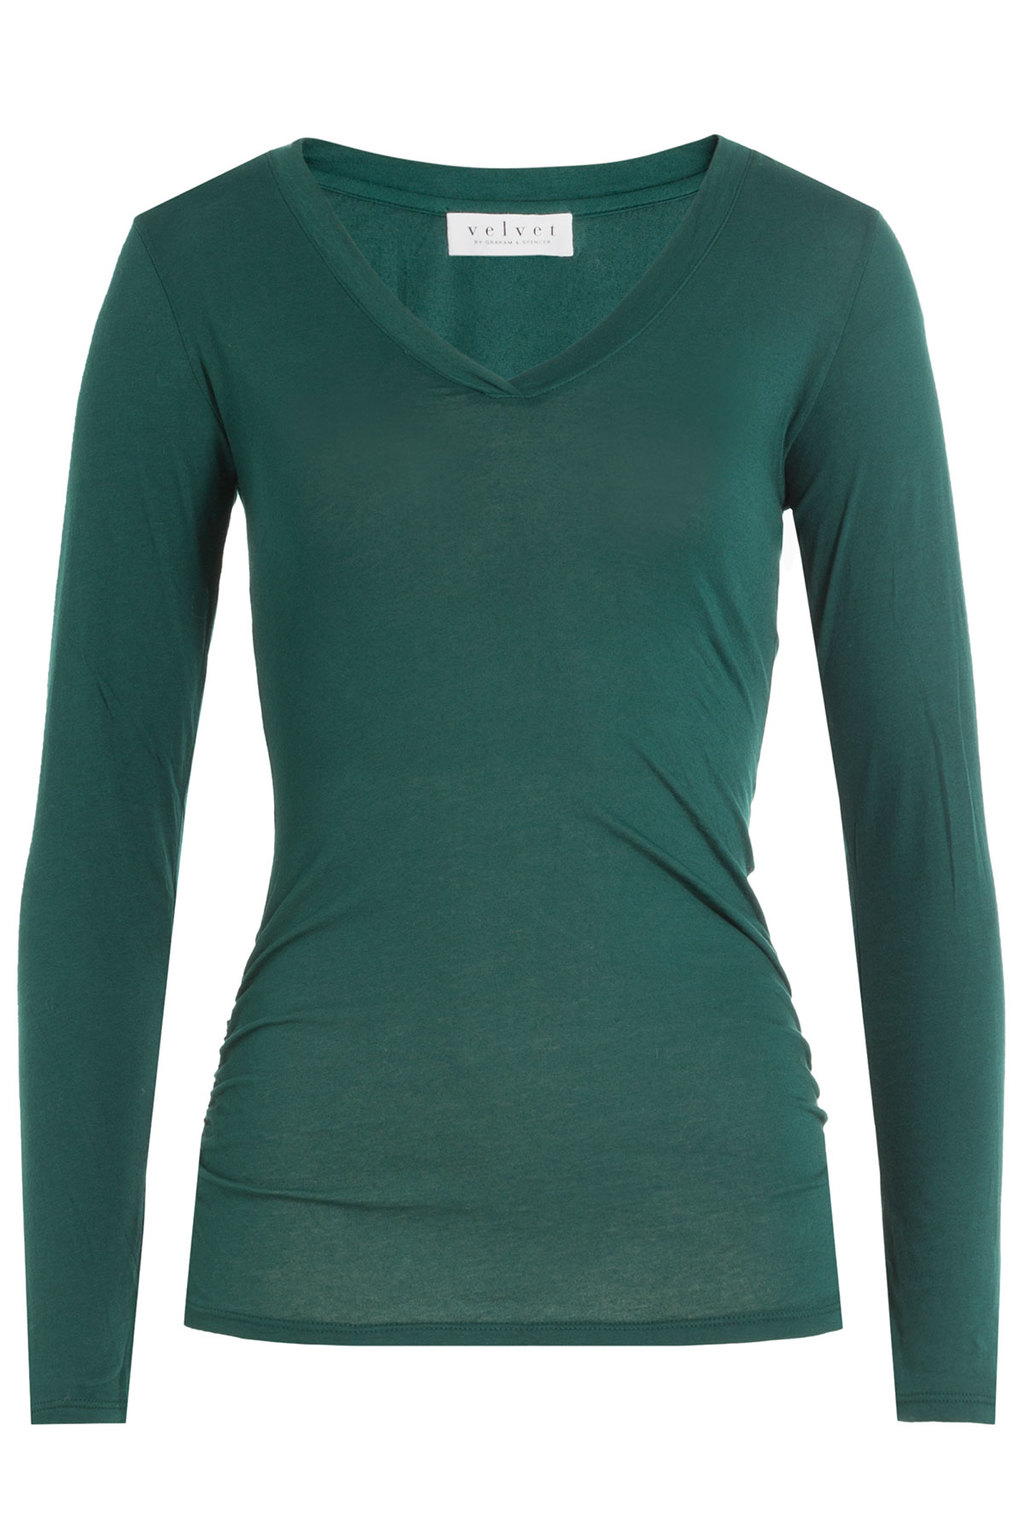 Long Sleeved Cotton Top - neckline: v-neck; pattern: plain; predominant colour: dark green; occasions: casual, work, creative work; length: standard; style: top; fibres: cotton - 100%; fit: body skimming; sleeve length: long sleeve; sleeve style: standard; pattern type: fabric; texture group: jersey - stretchy/drapey; season: a/w 2016; wardrobe: highlight